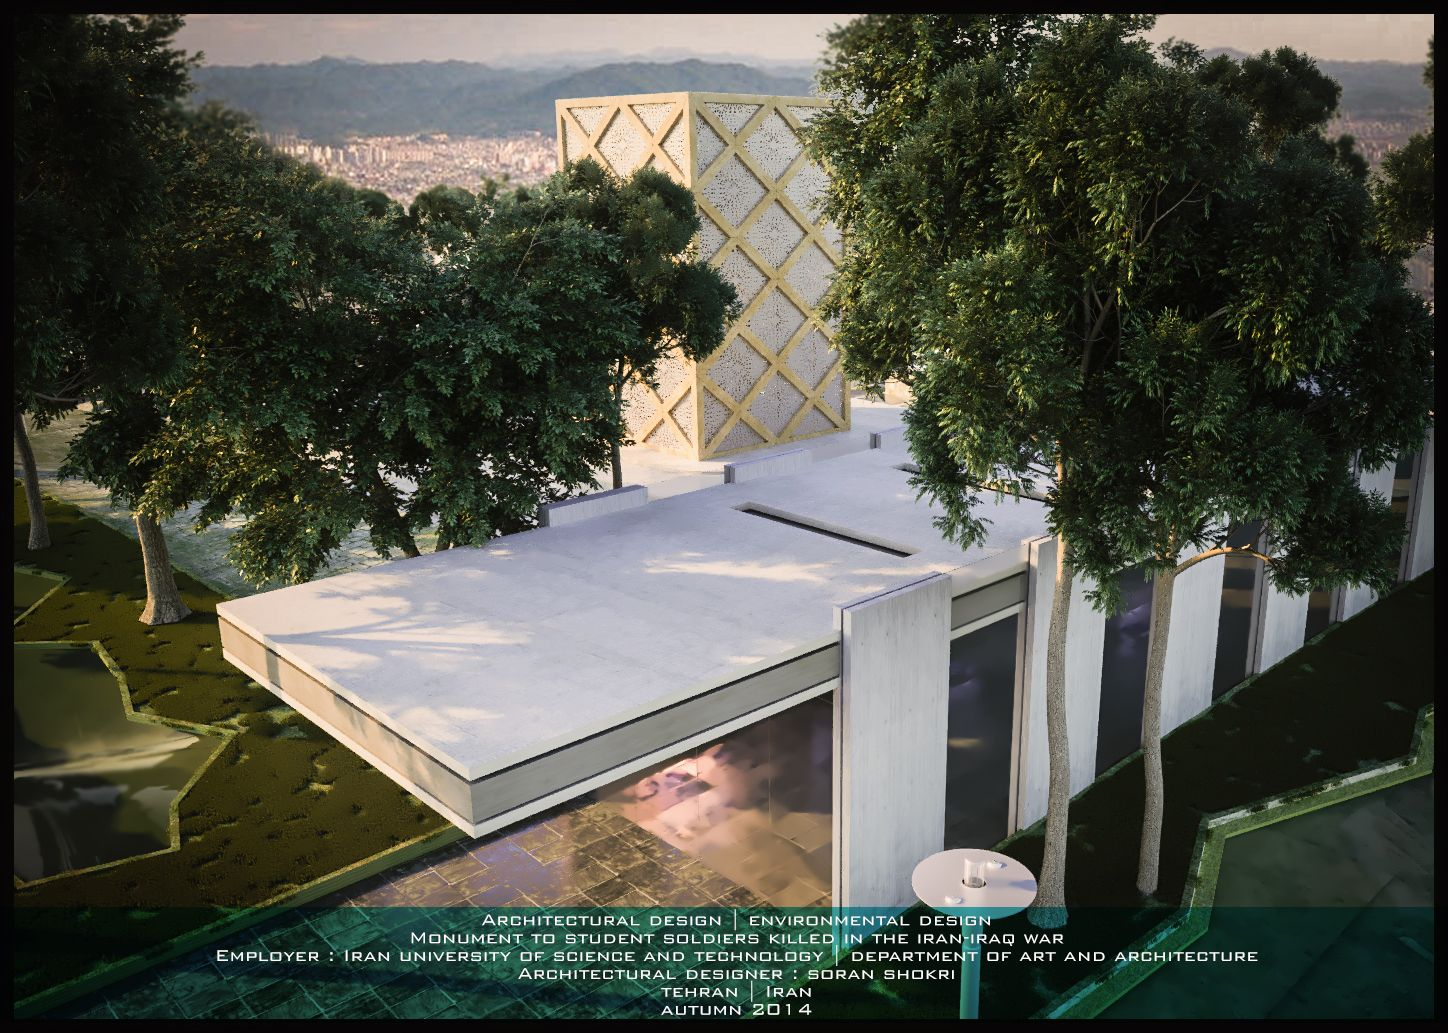 Architectural Design Environmental Design Monument To Student